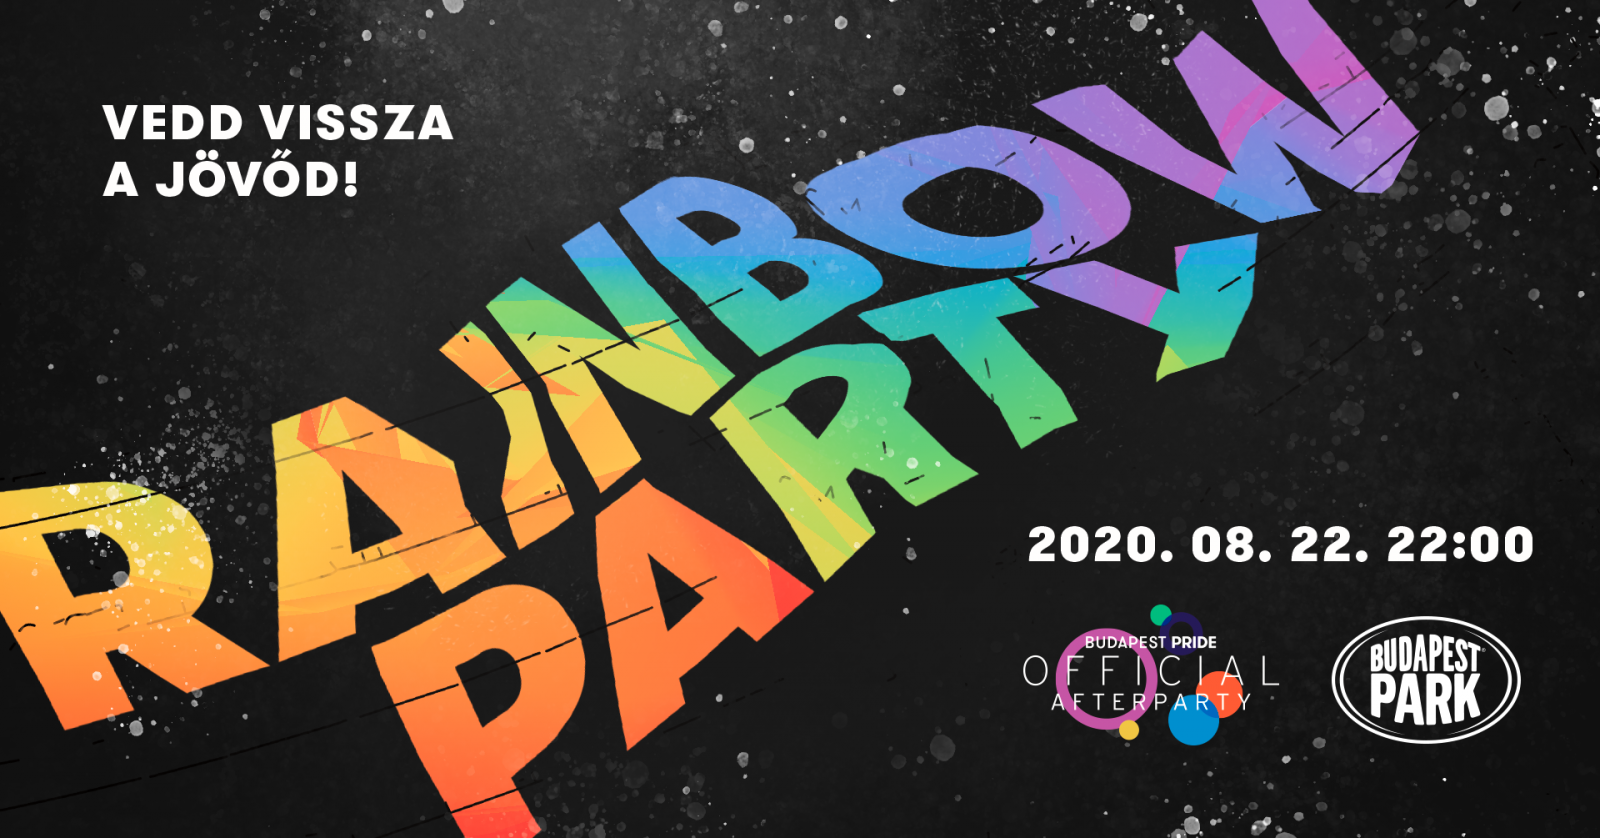 Budapest Pride Rainbow Party Budapest Park afterparty augusztus 22 2020